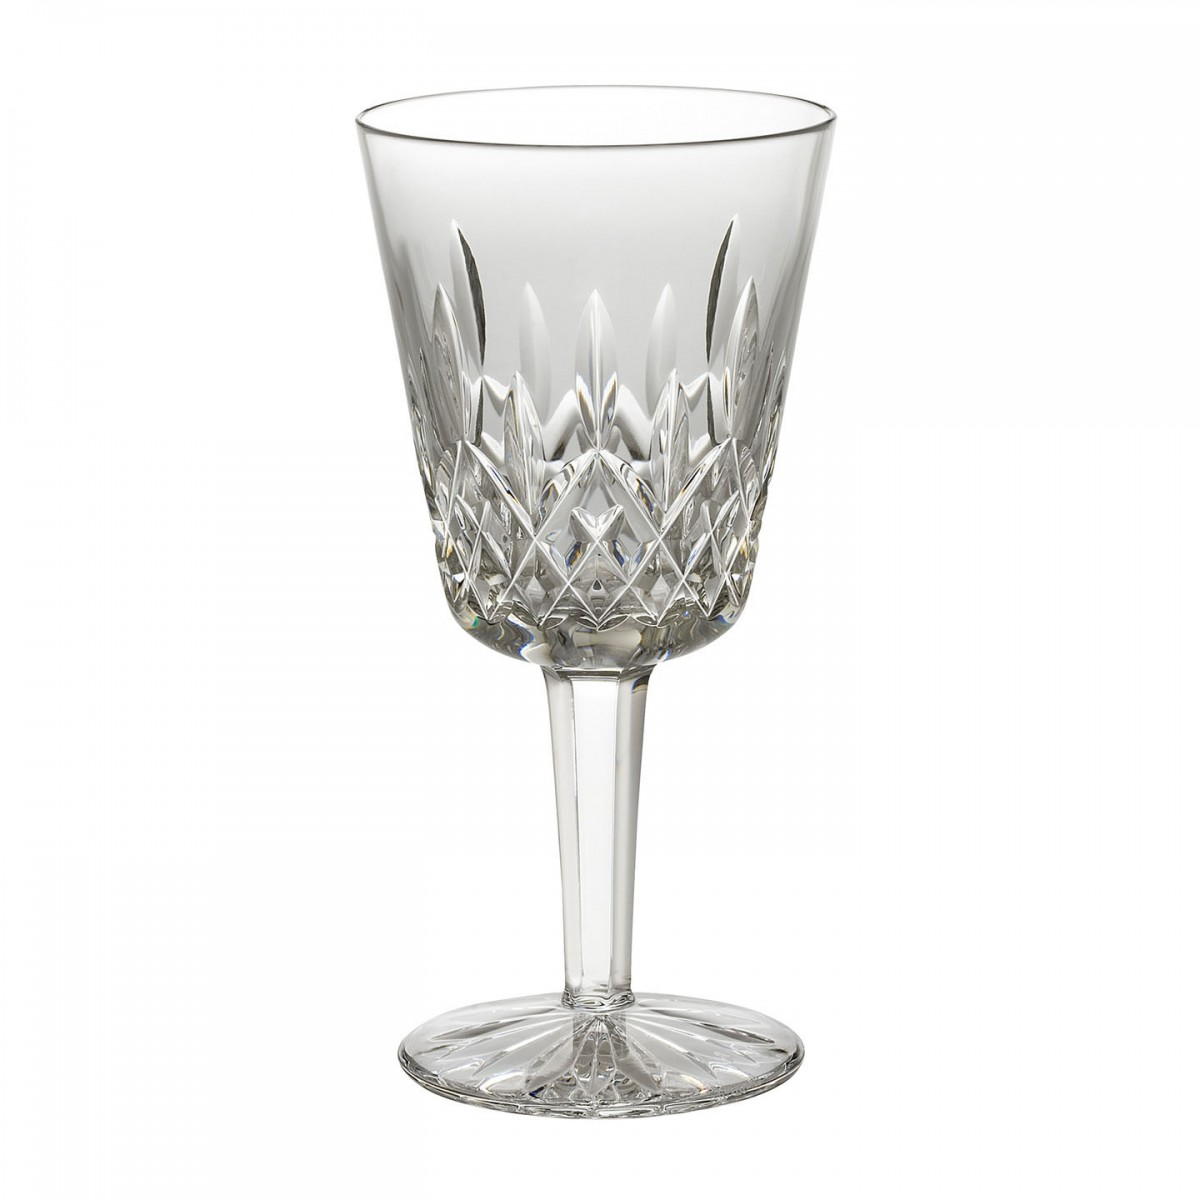 Admirable waterford lismore with lismore goblet design glass waterford lismore